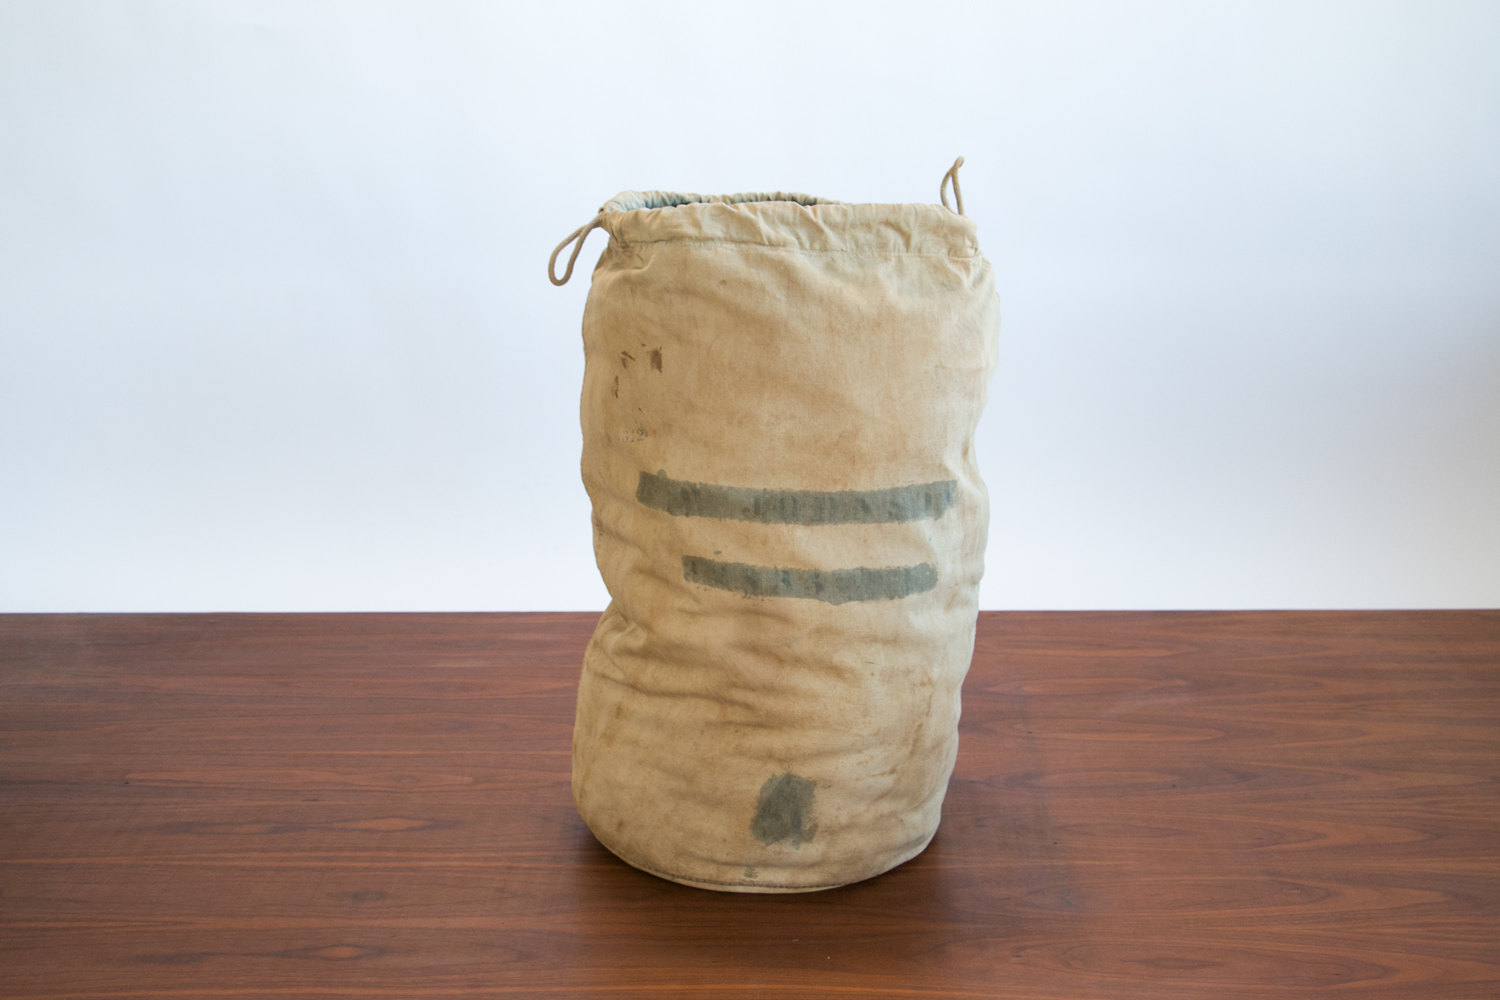 Vintage 1940's Laundry Bag / Mail Bag / Duffel Bag // Large with Ink Markings //  Retro, Hipster, Rustic, Mid Century, Military